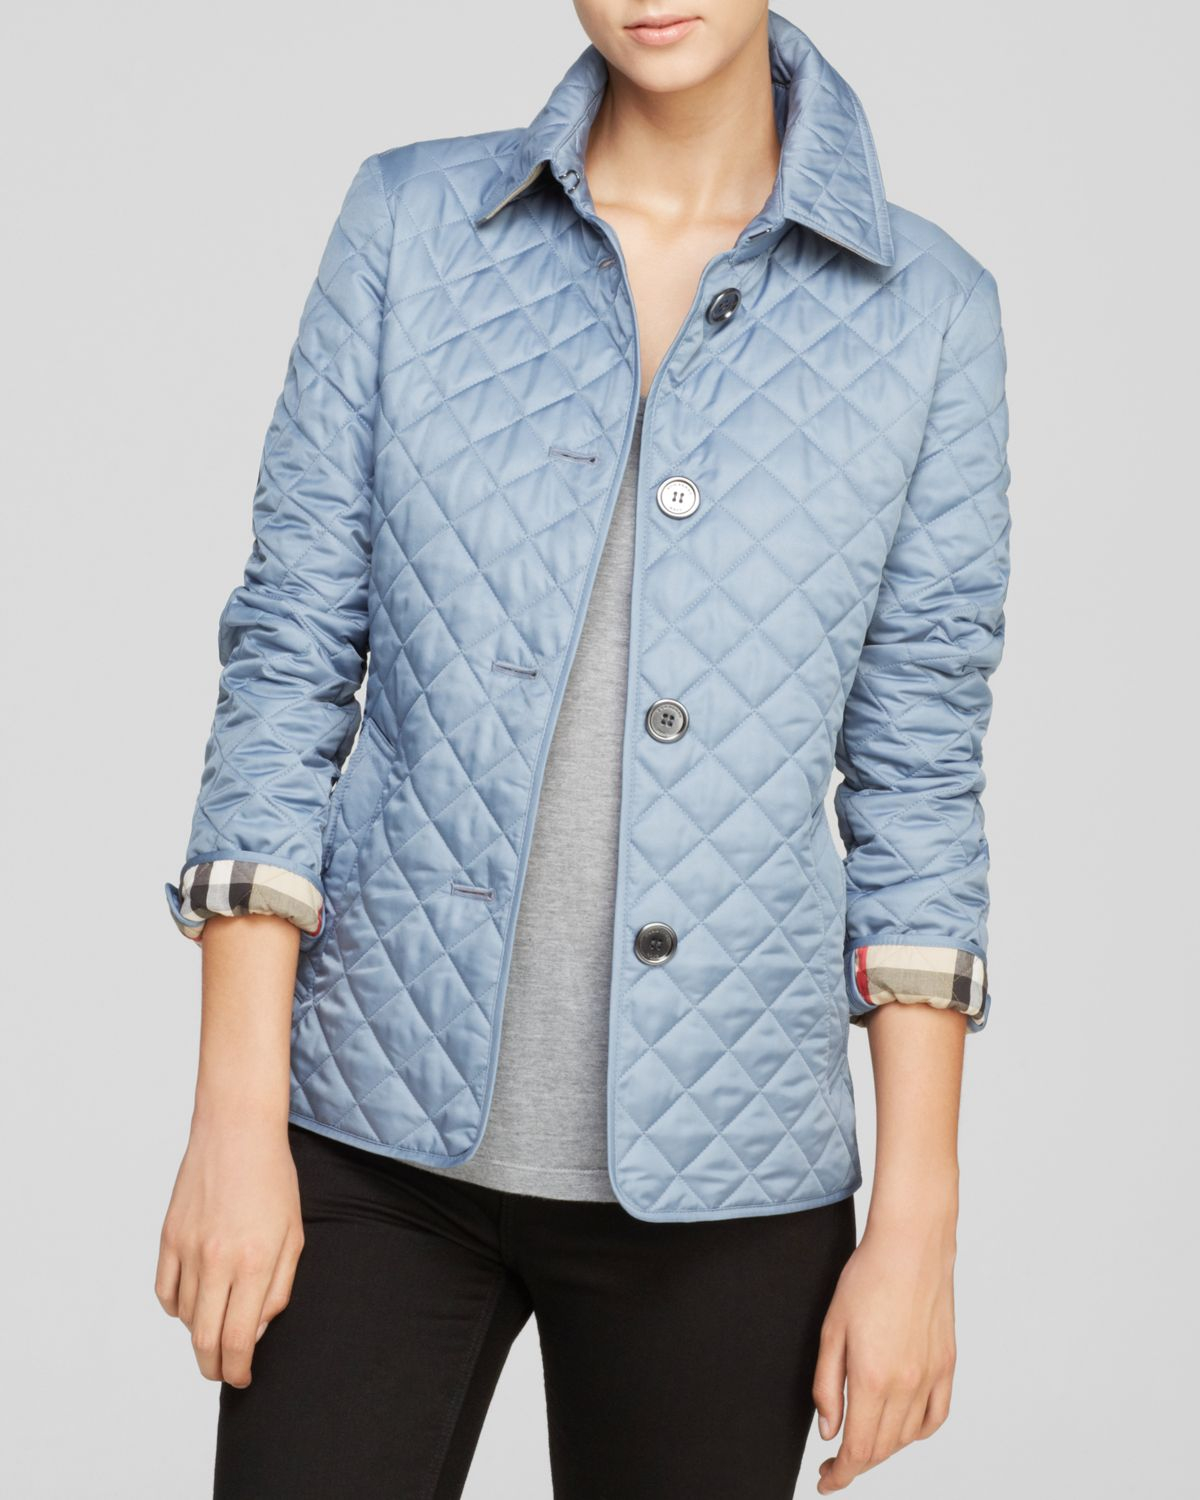 Burberry Brit Diamond Quilted Jacket in Blue | Lyst : burberry diamond quilted jacket sale - Adamdwight.com